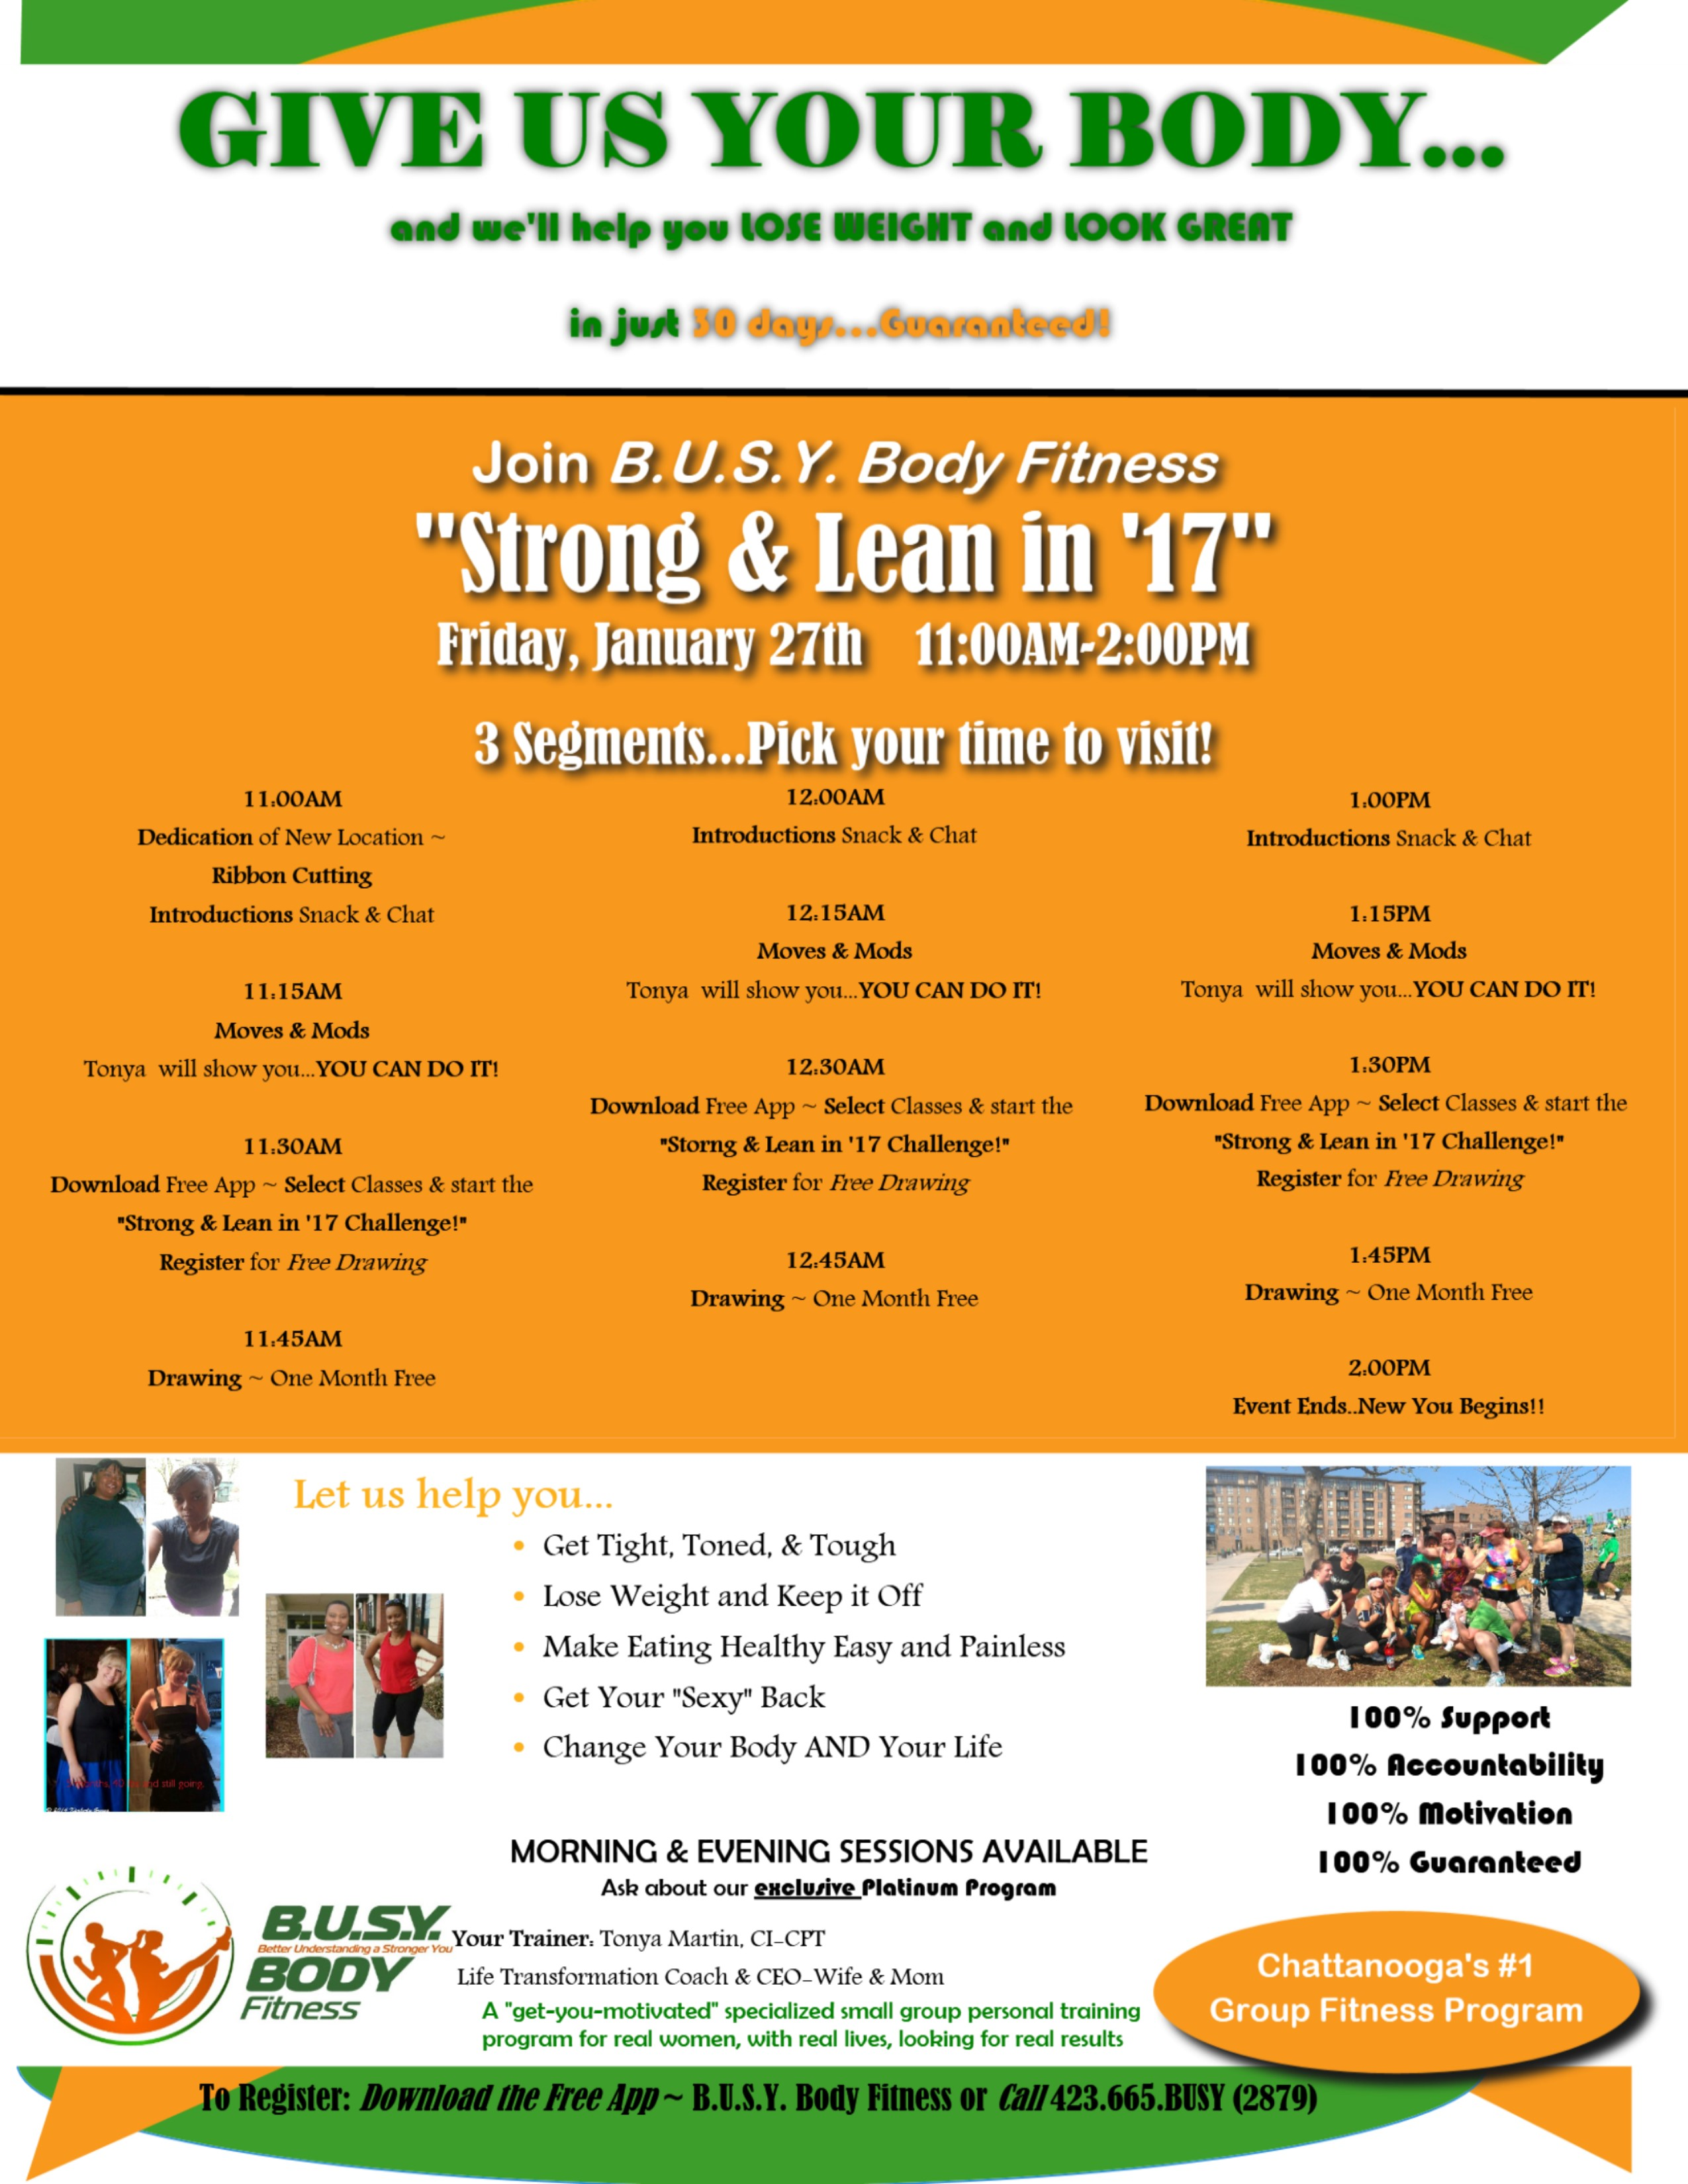 Busy Body Strong and Lean in 17 Flier 003